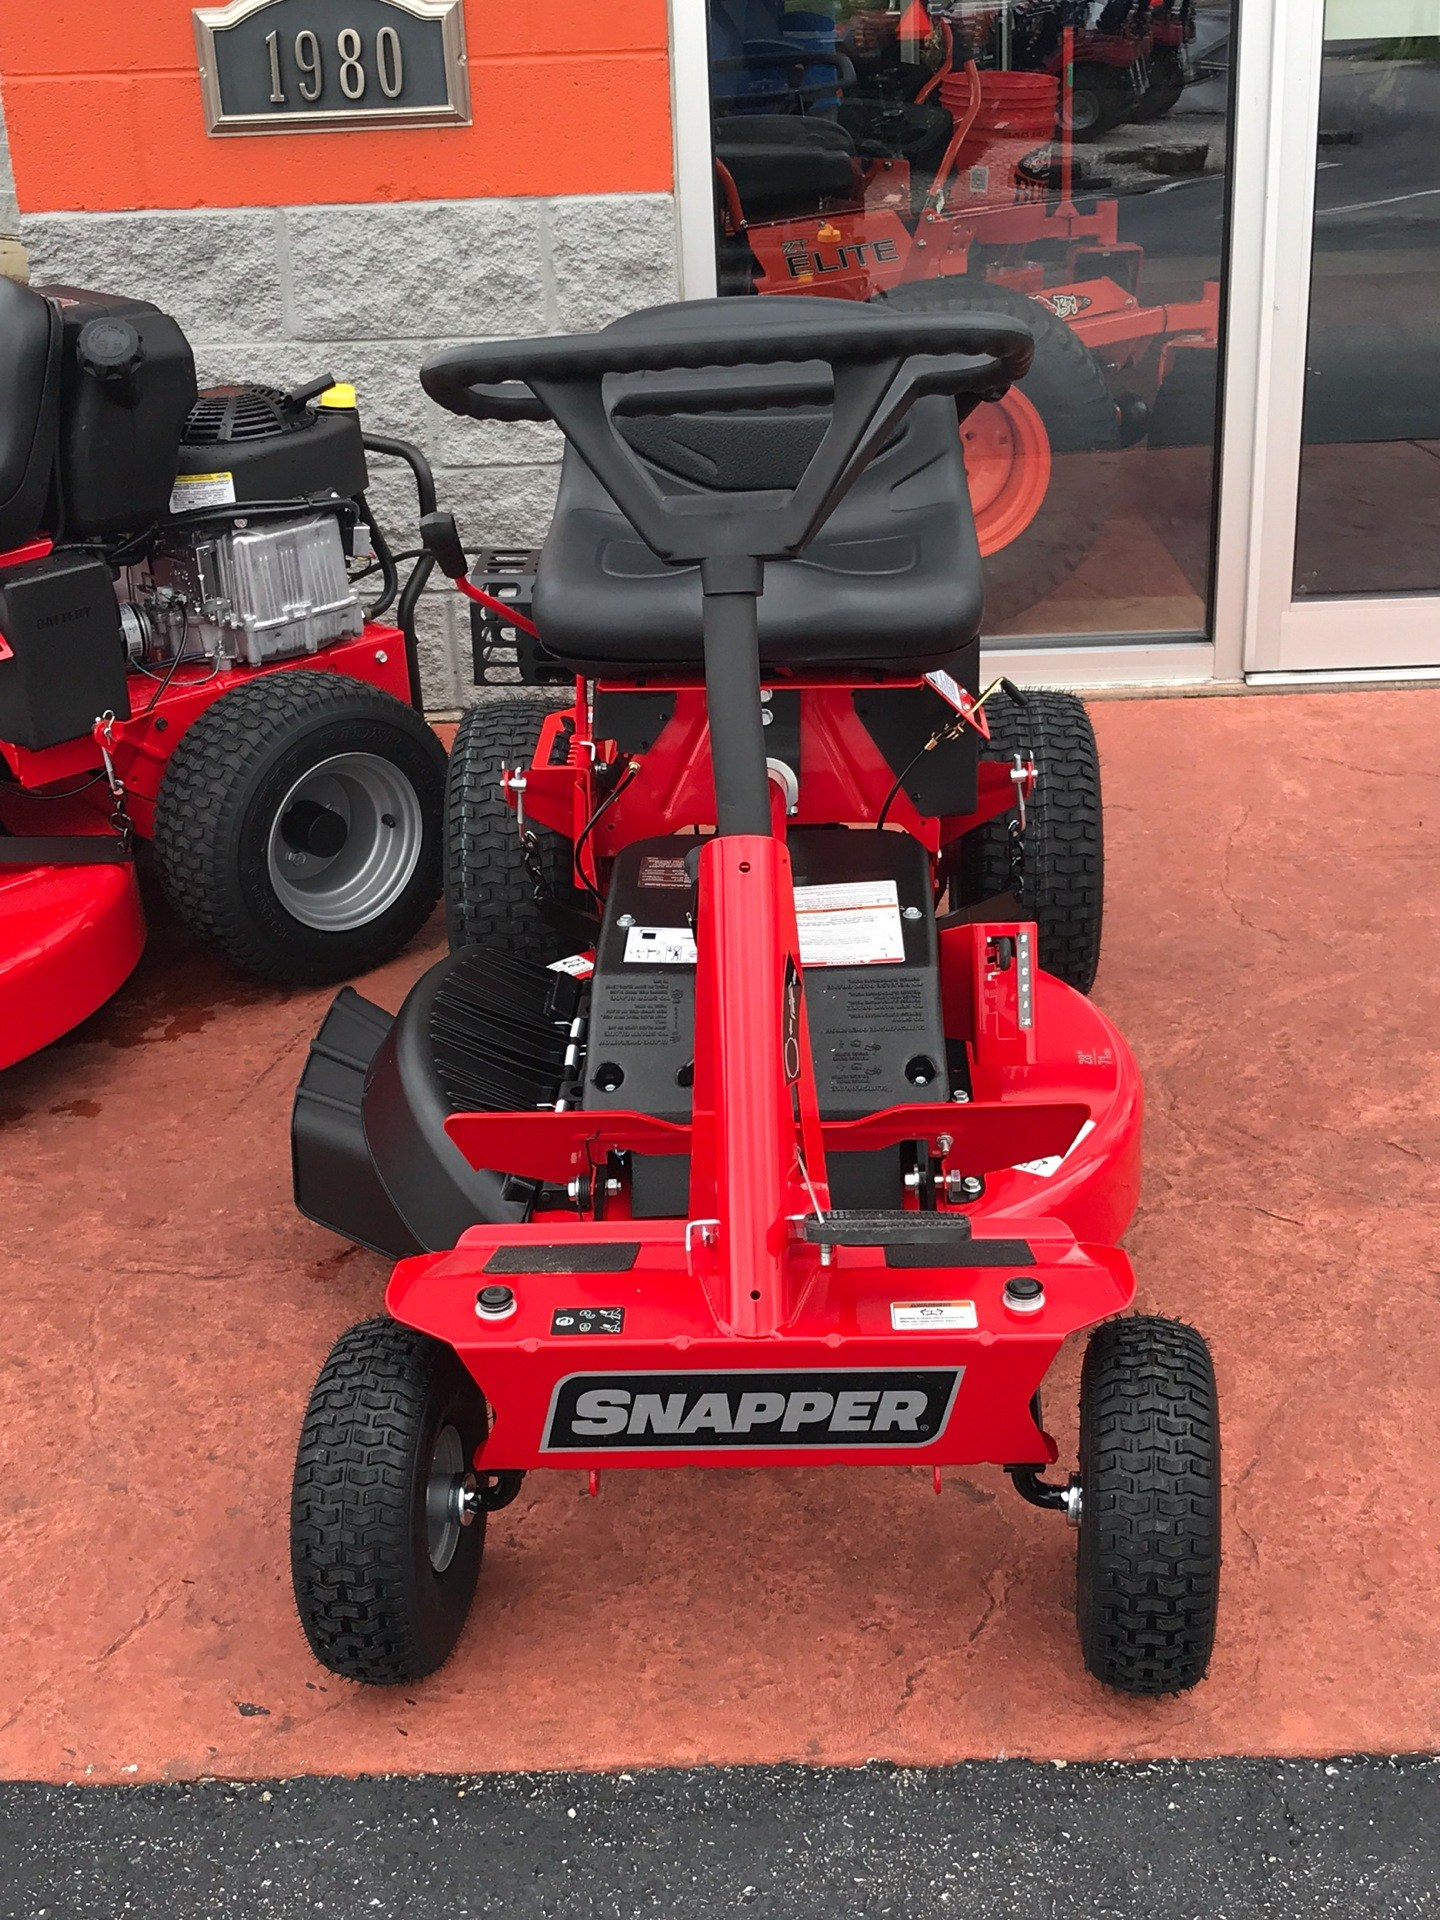 2019 Snapper Classic Rear Engine Riding Lawn Mower in Evansville, Indiana - Photo 1